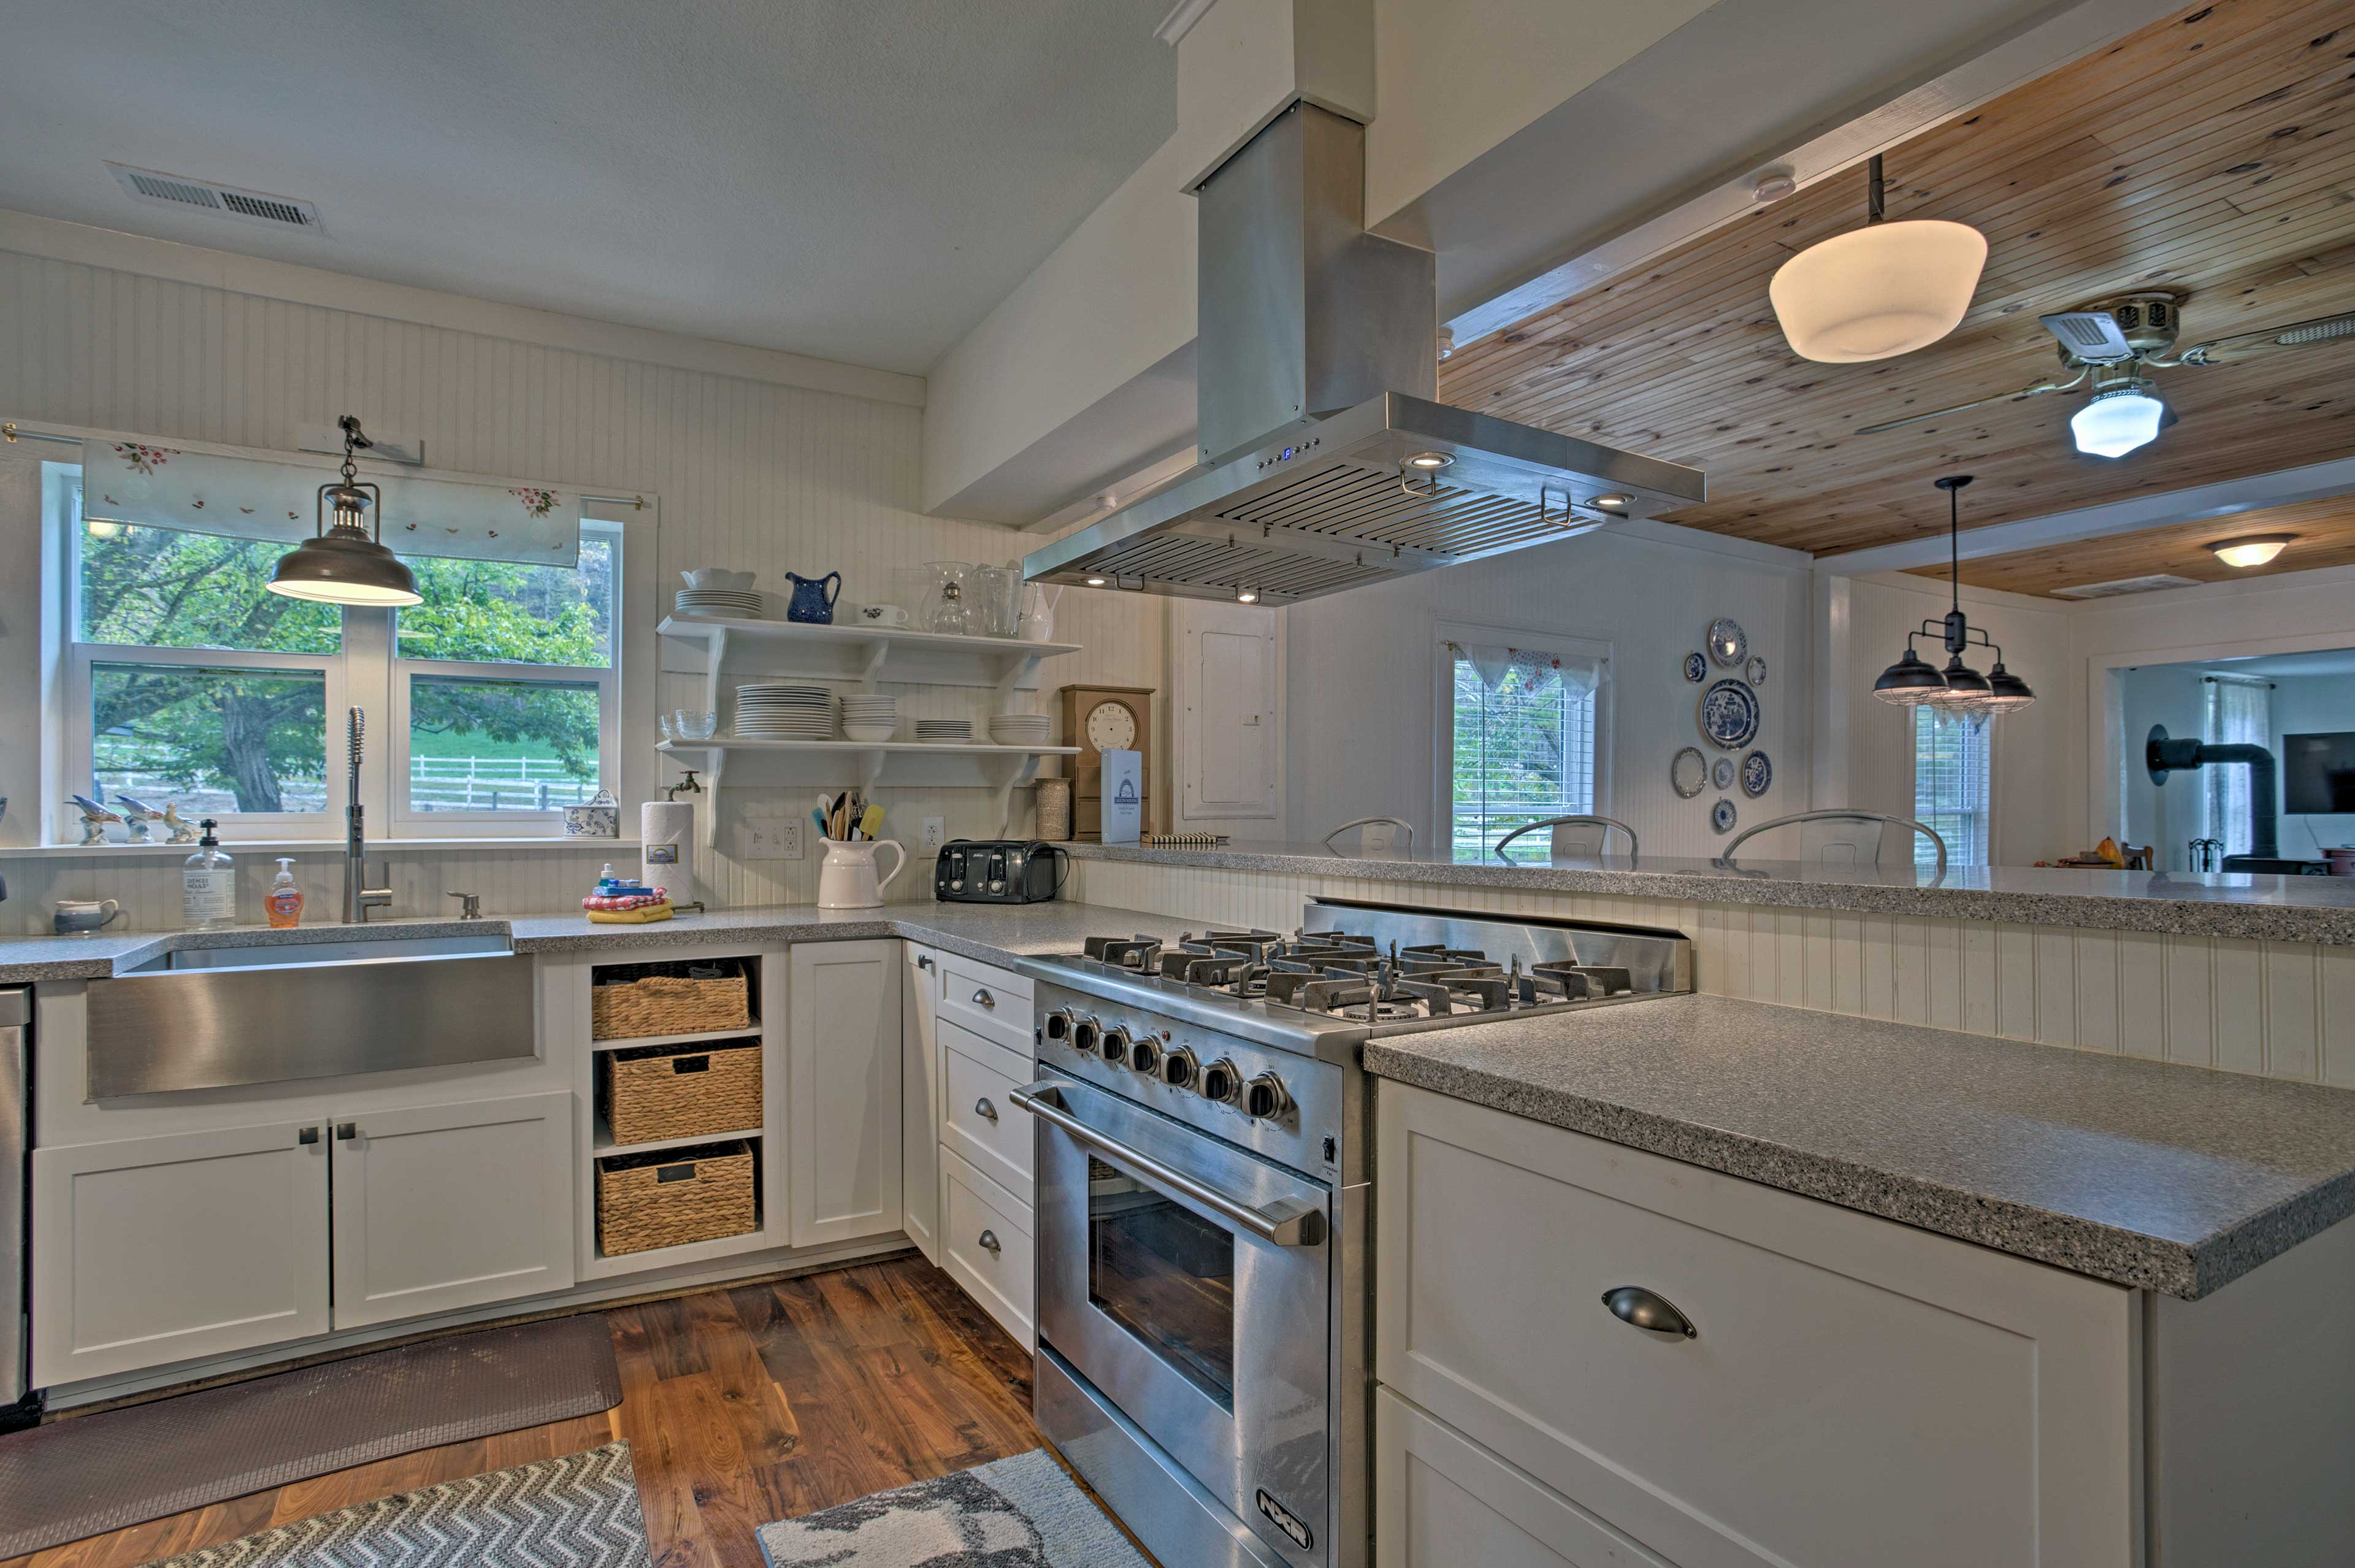 Create delicious meals in the fully equipped kitchen!